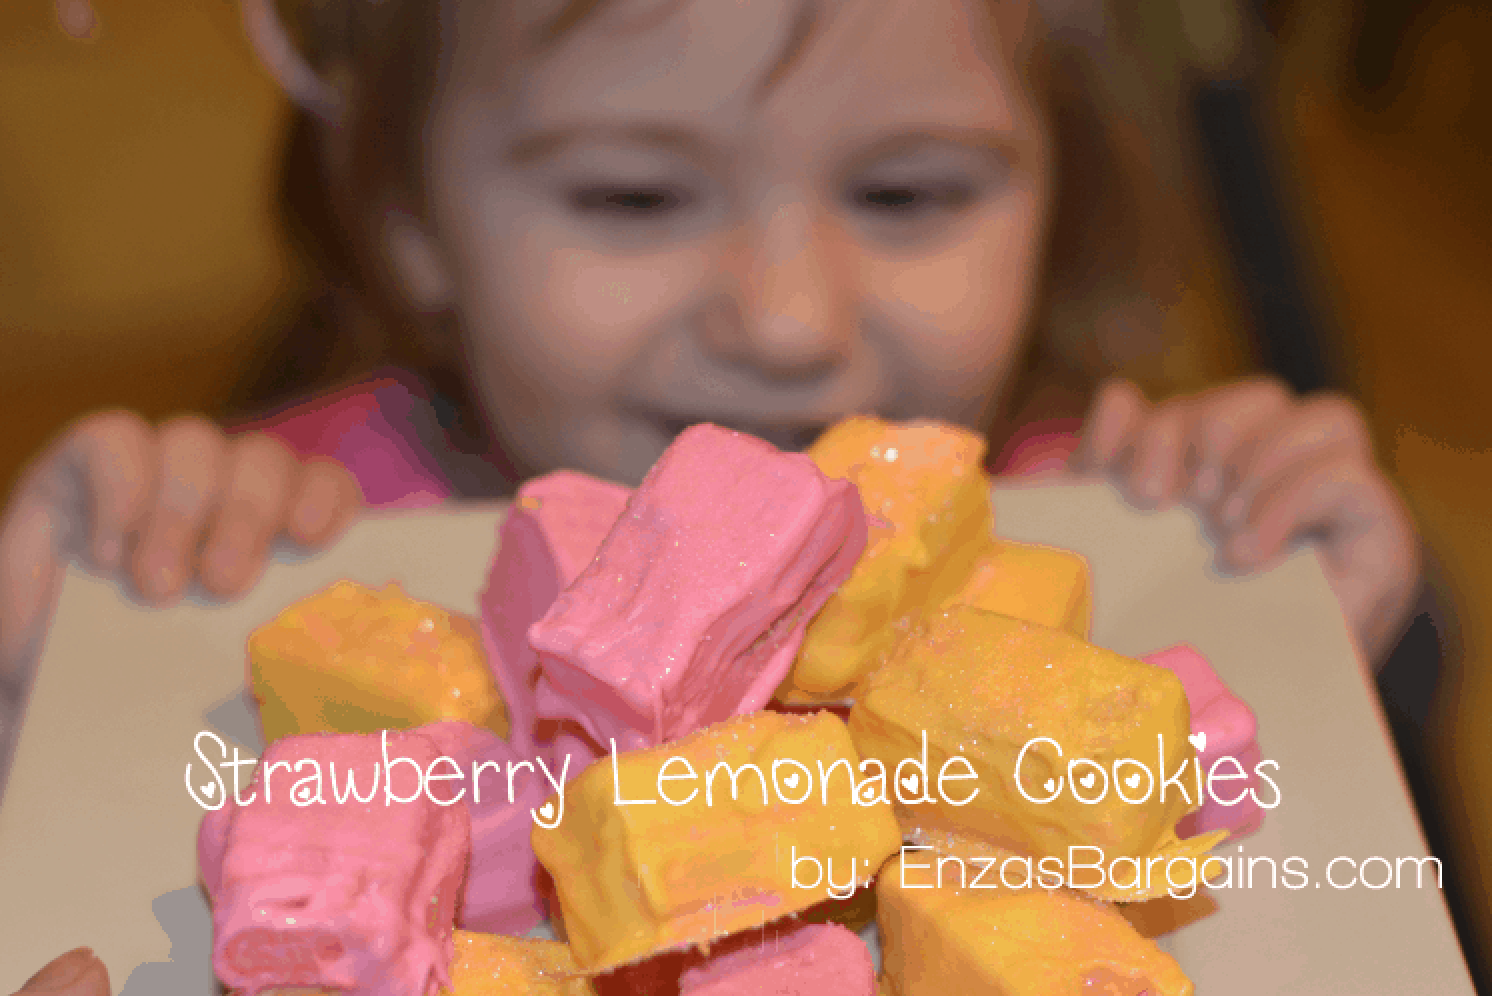 Strawberry Lemonade Cookies - Easy and Yummy!